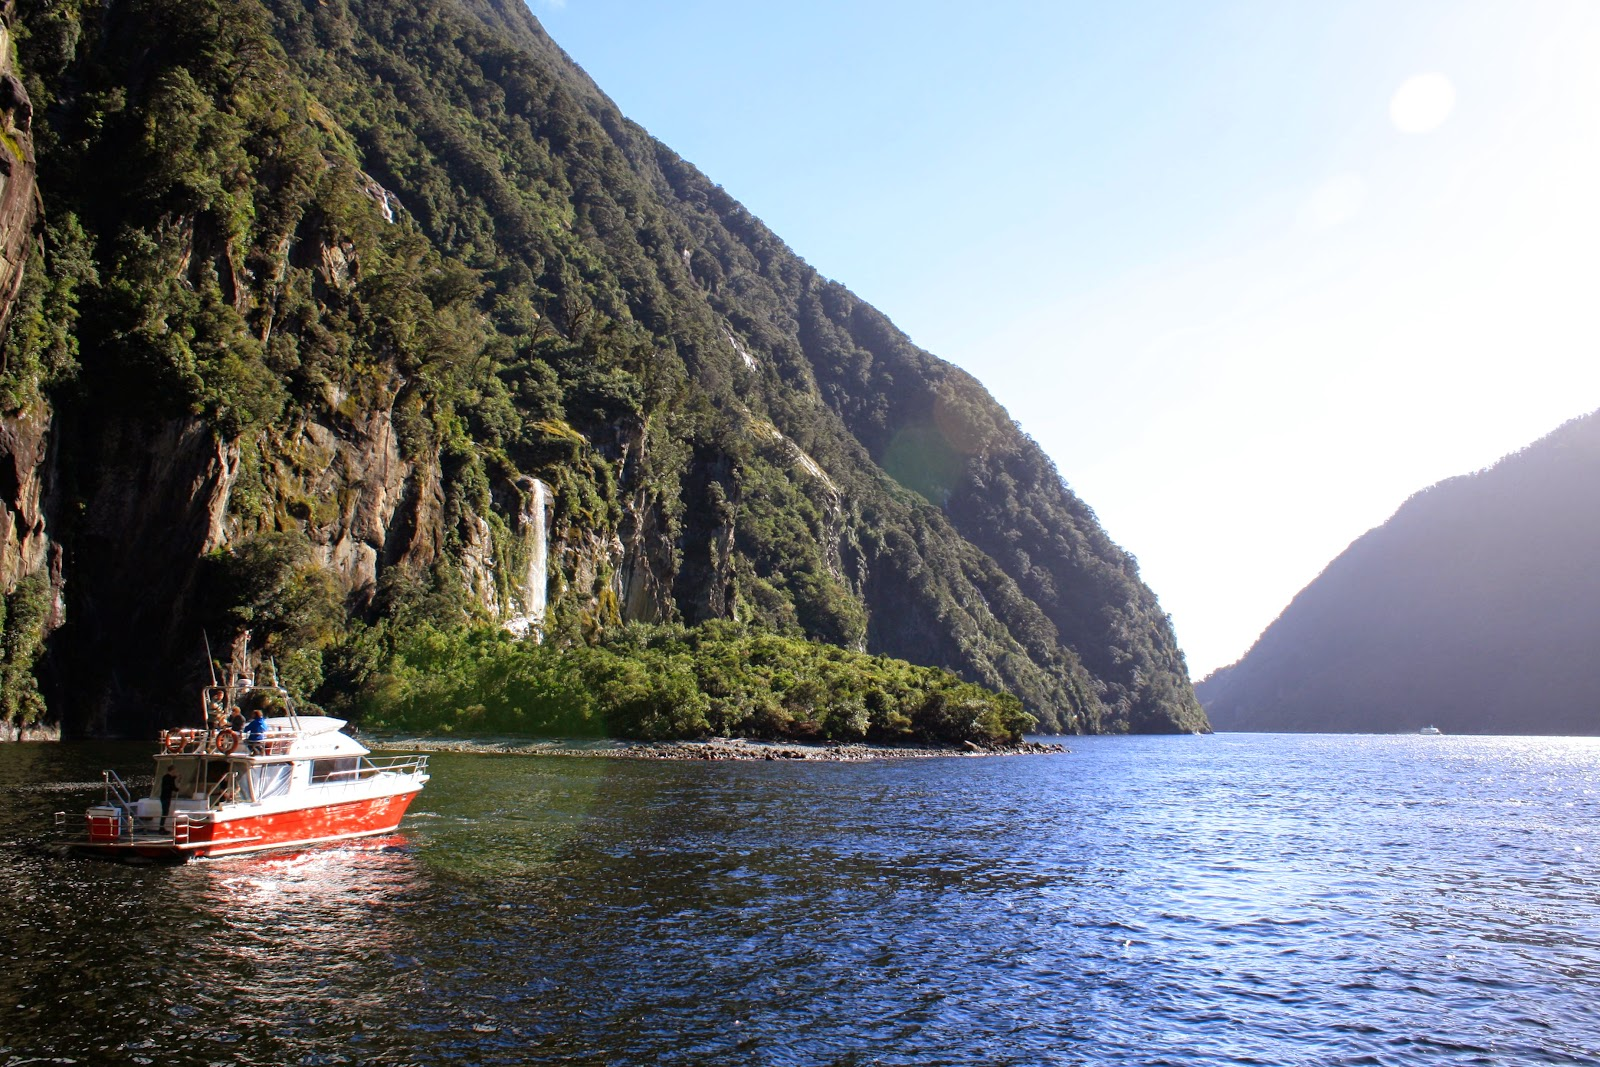 A boat taking a cruise in Milford Sound.